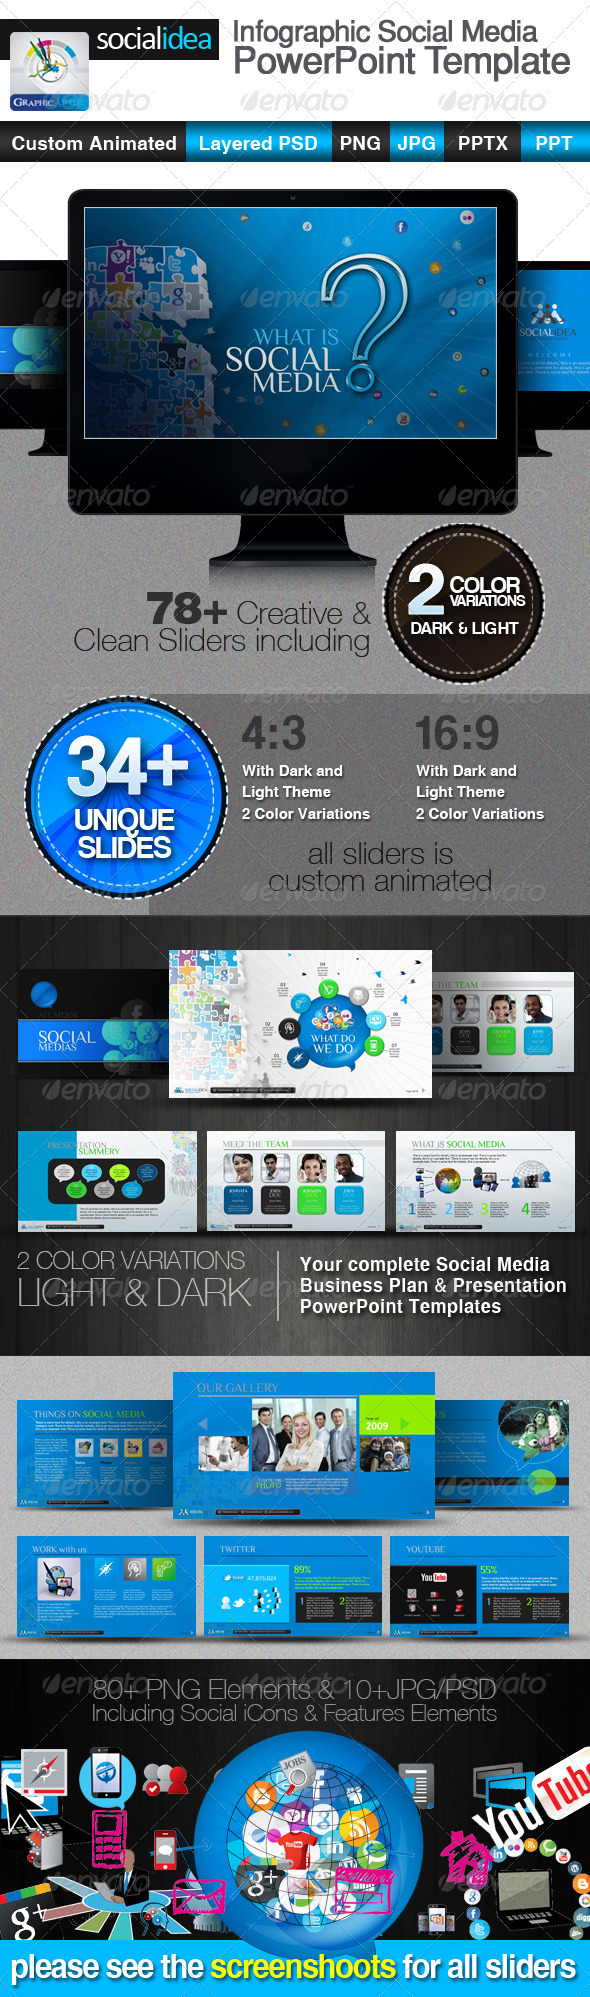 socialidea social media powerpoint templates graphicriver. Black Bedroom Furniture Sets. Home Design Ideas